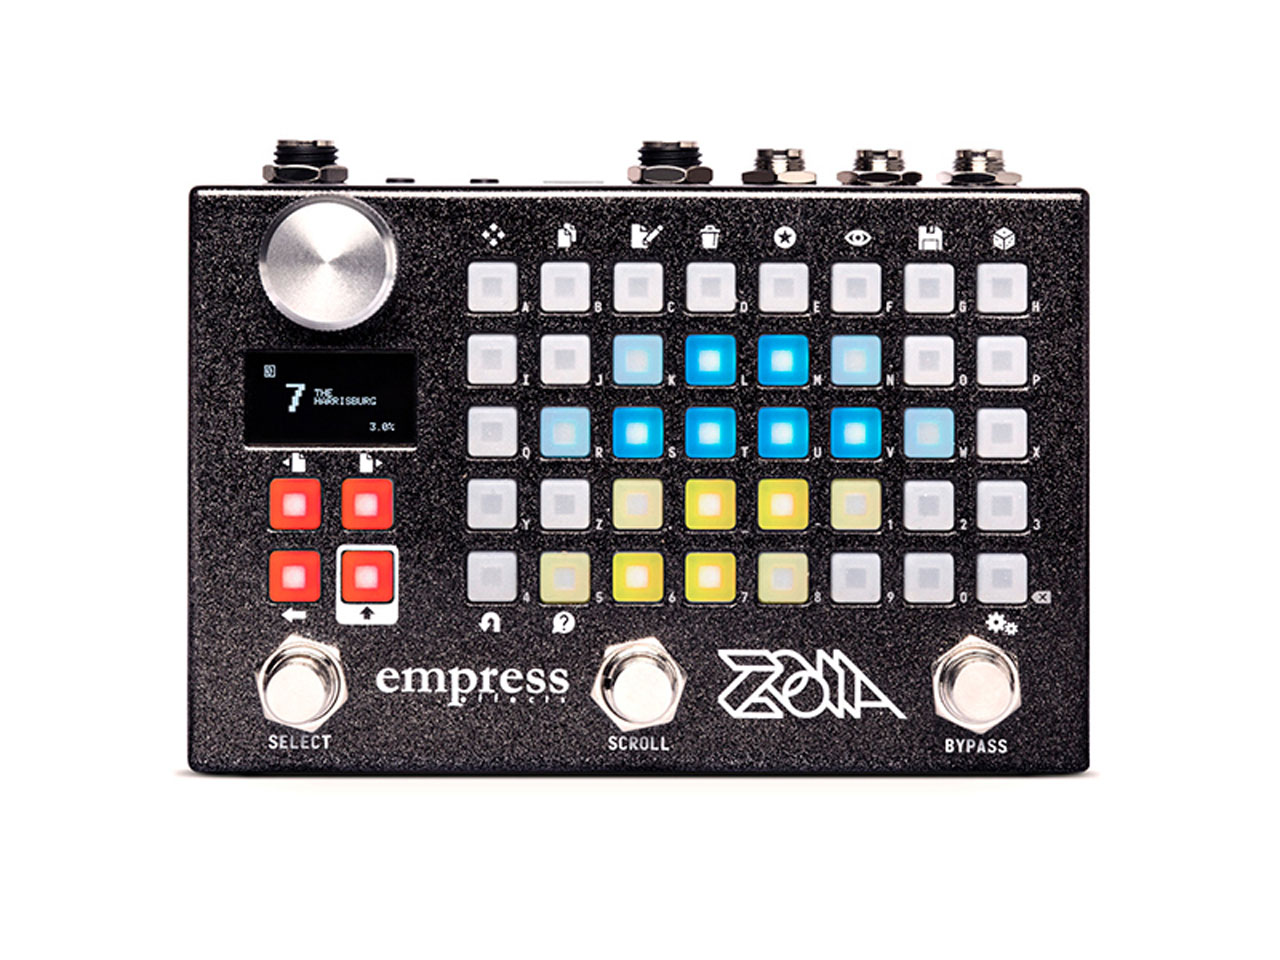 Empress Effects(エンプレスエフェクト) ZOIA modular pedal system